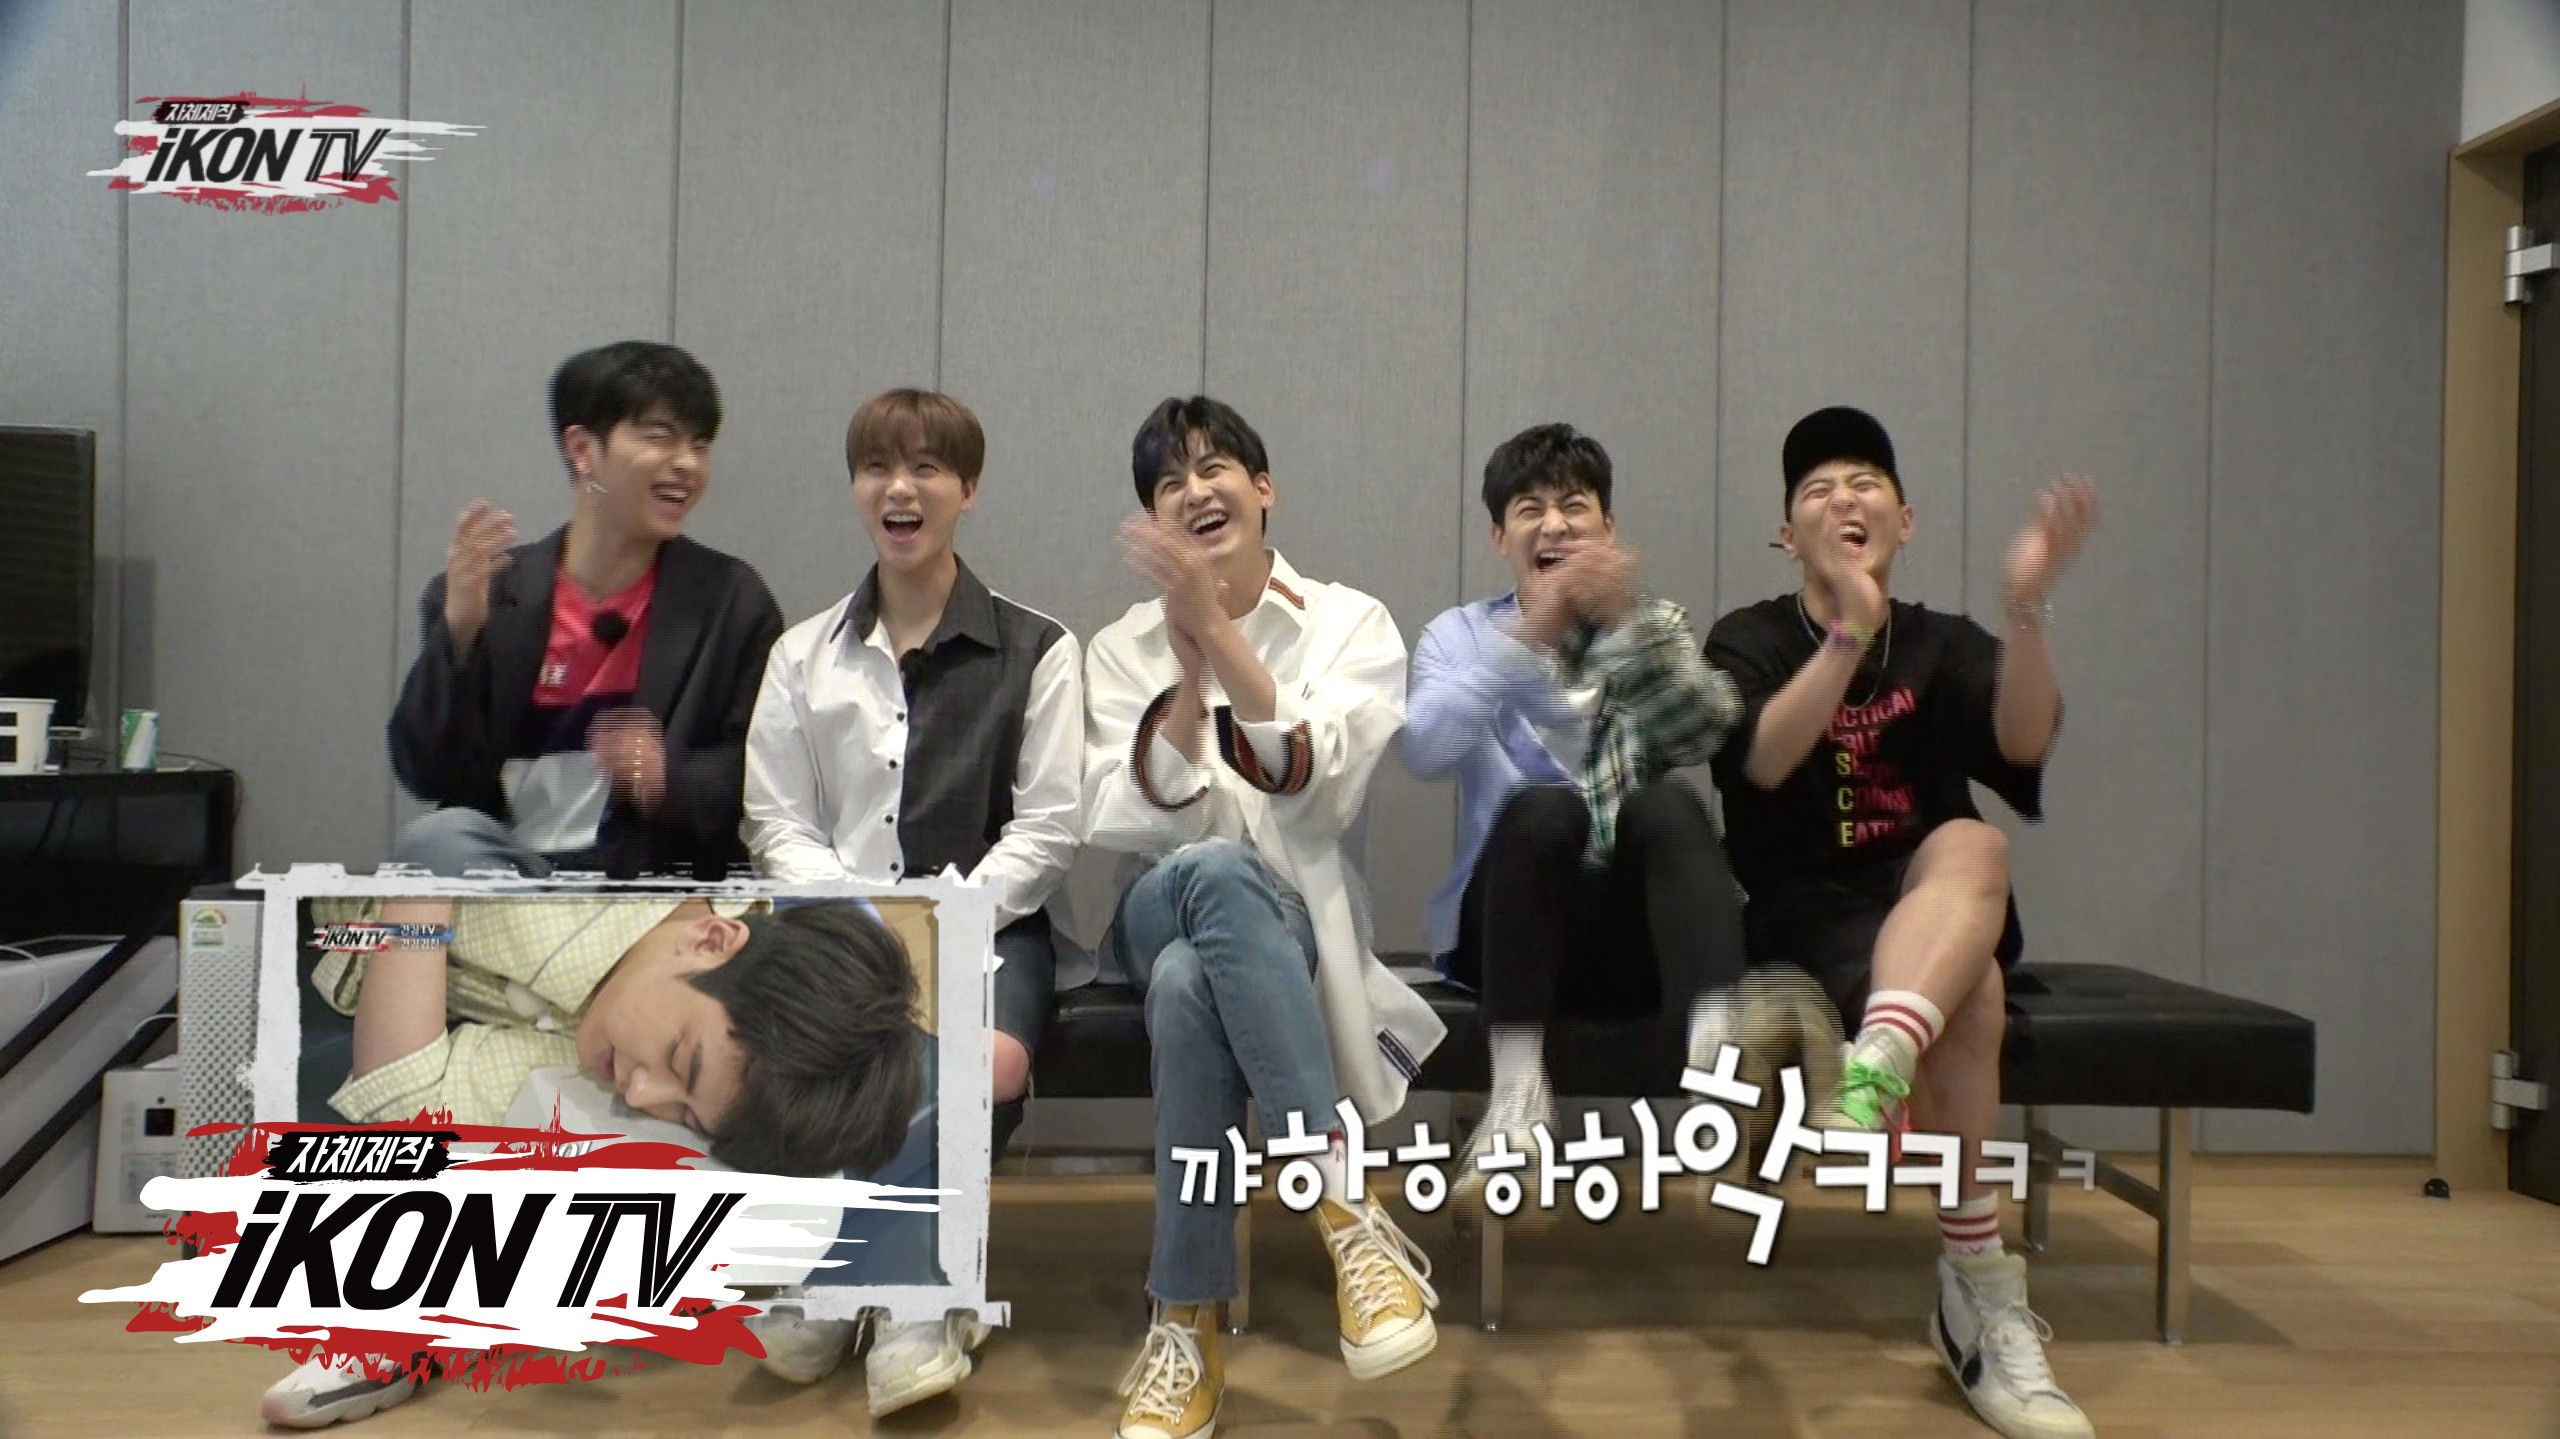 iKON - '자체제작 iKON TV' EP.6 REACTION